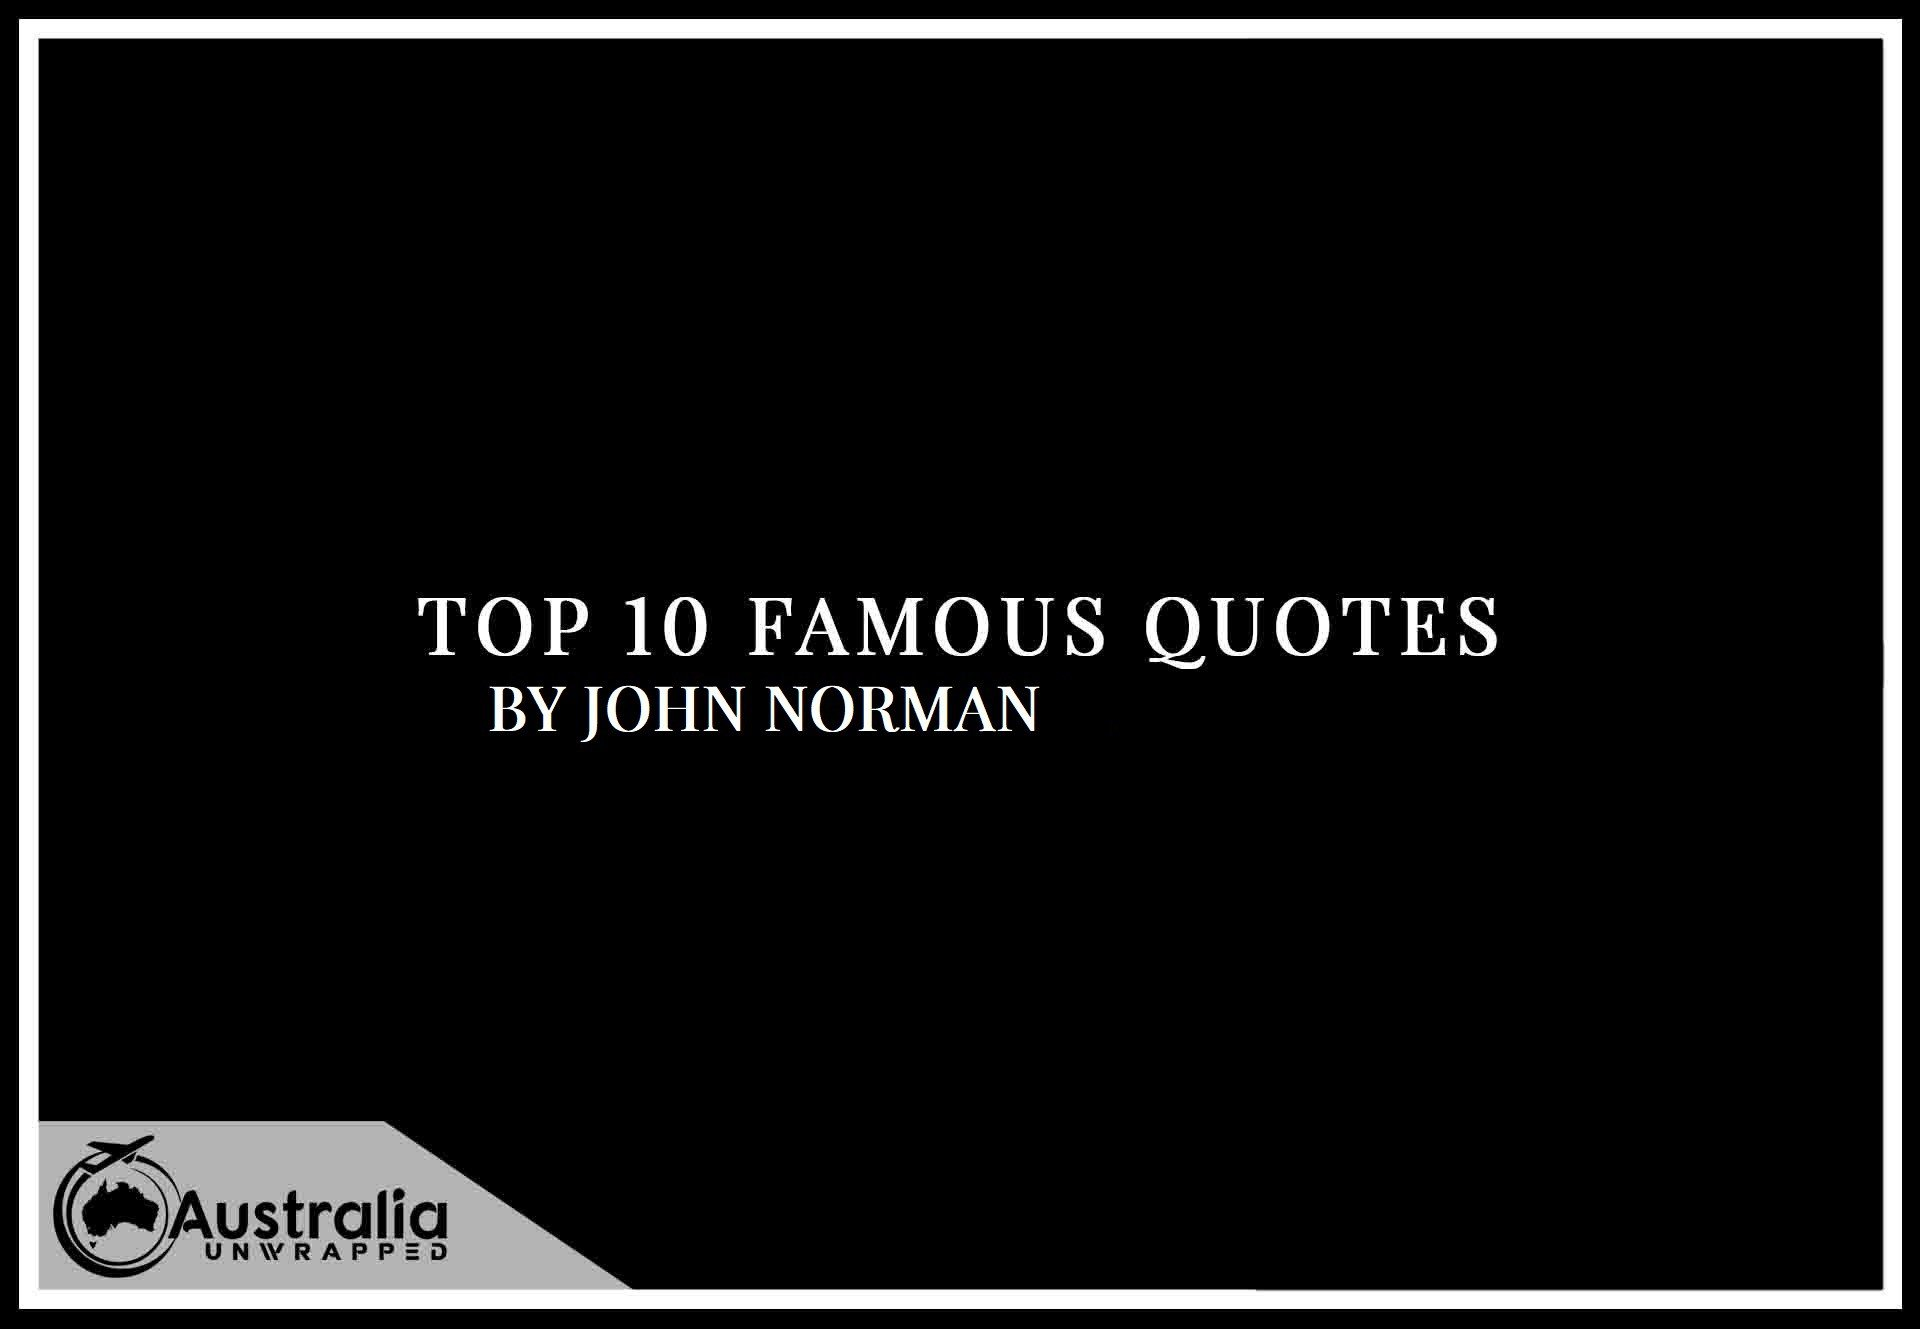 Top 10 Famous Quotes by Author John Norman